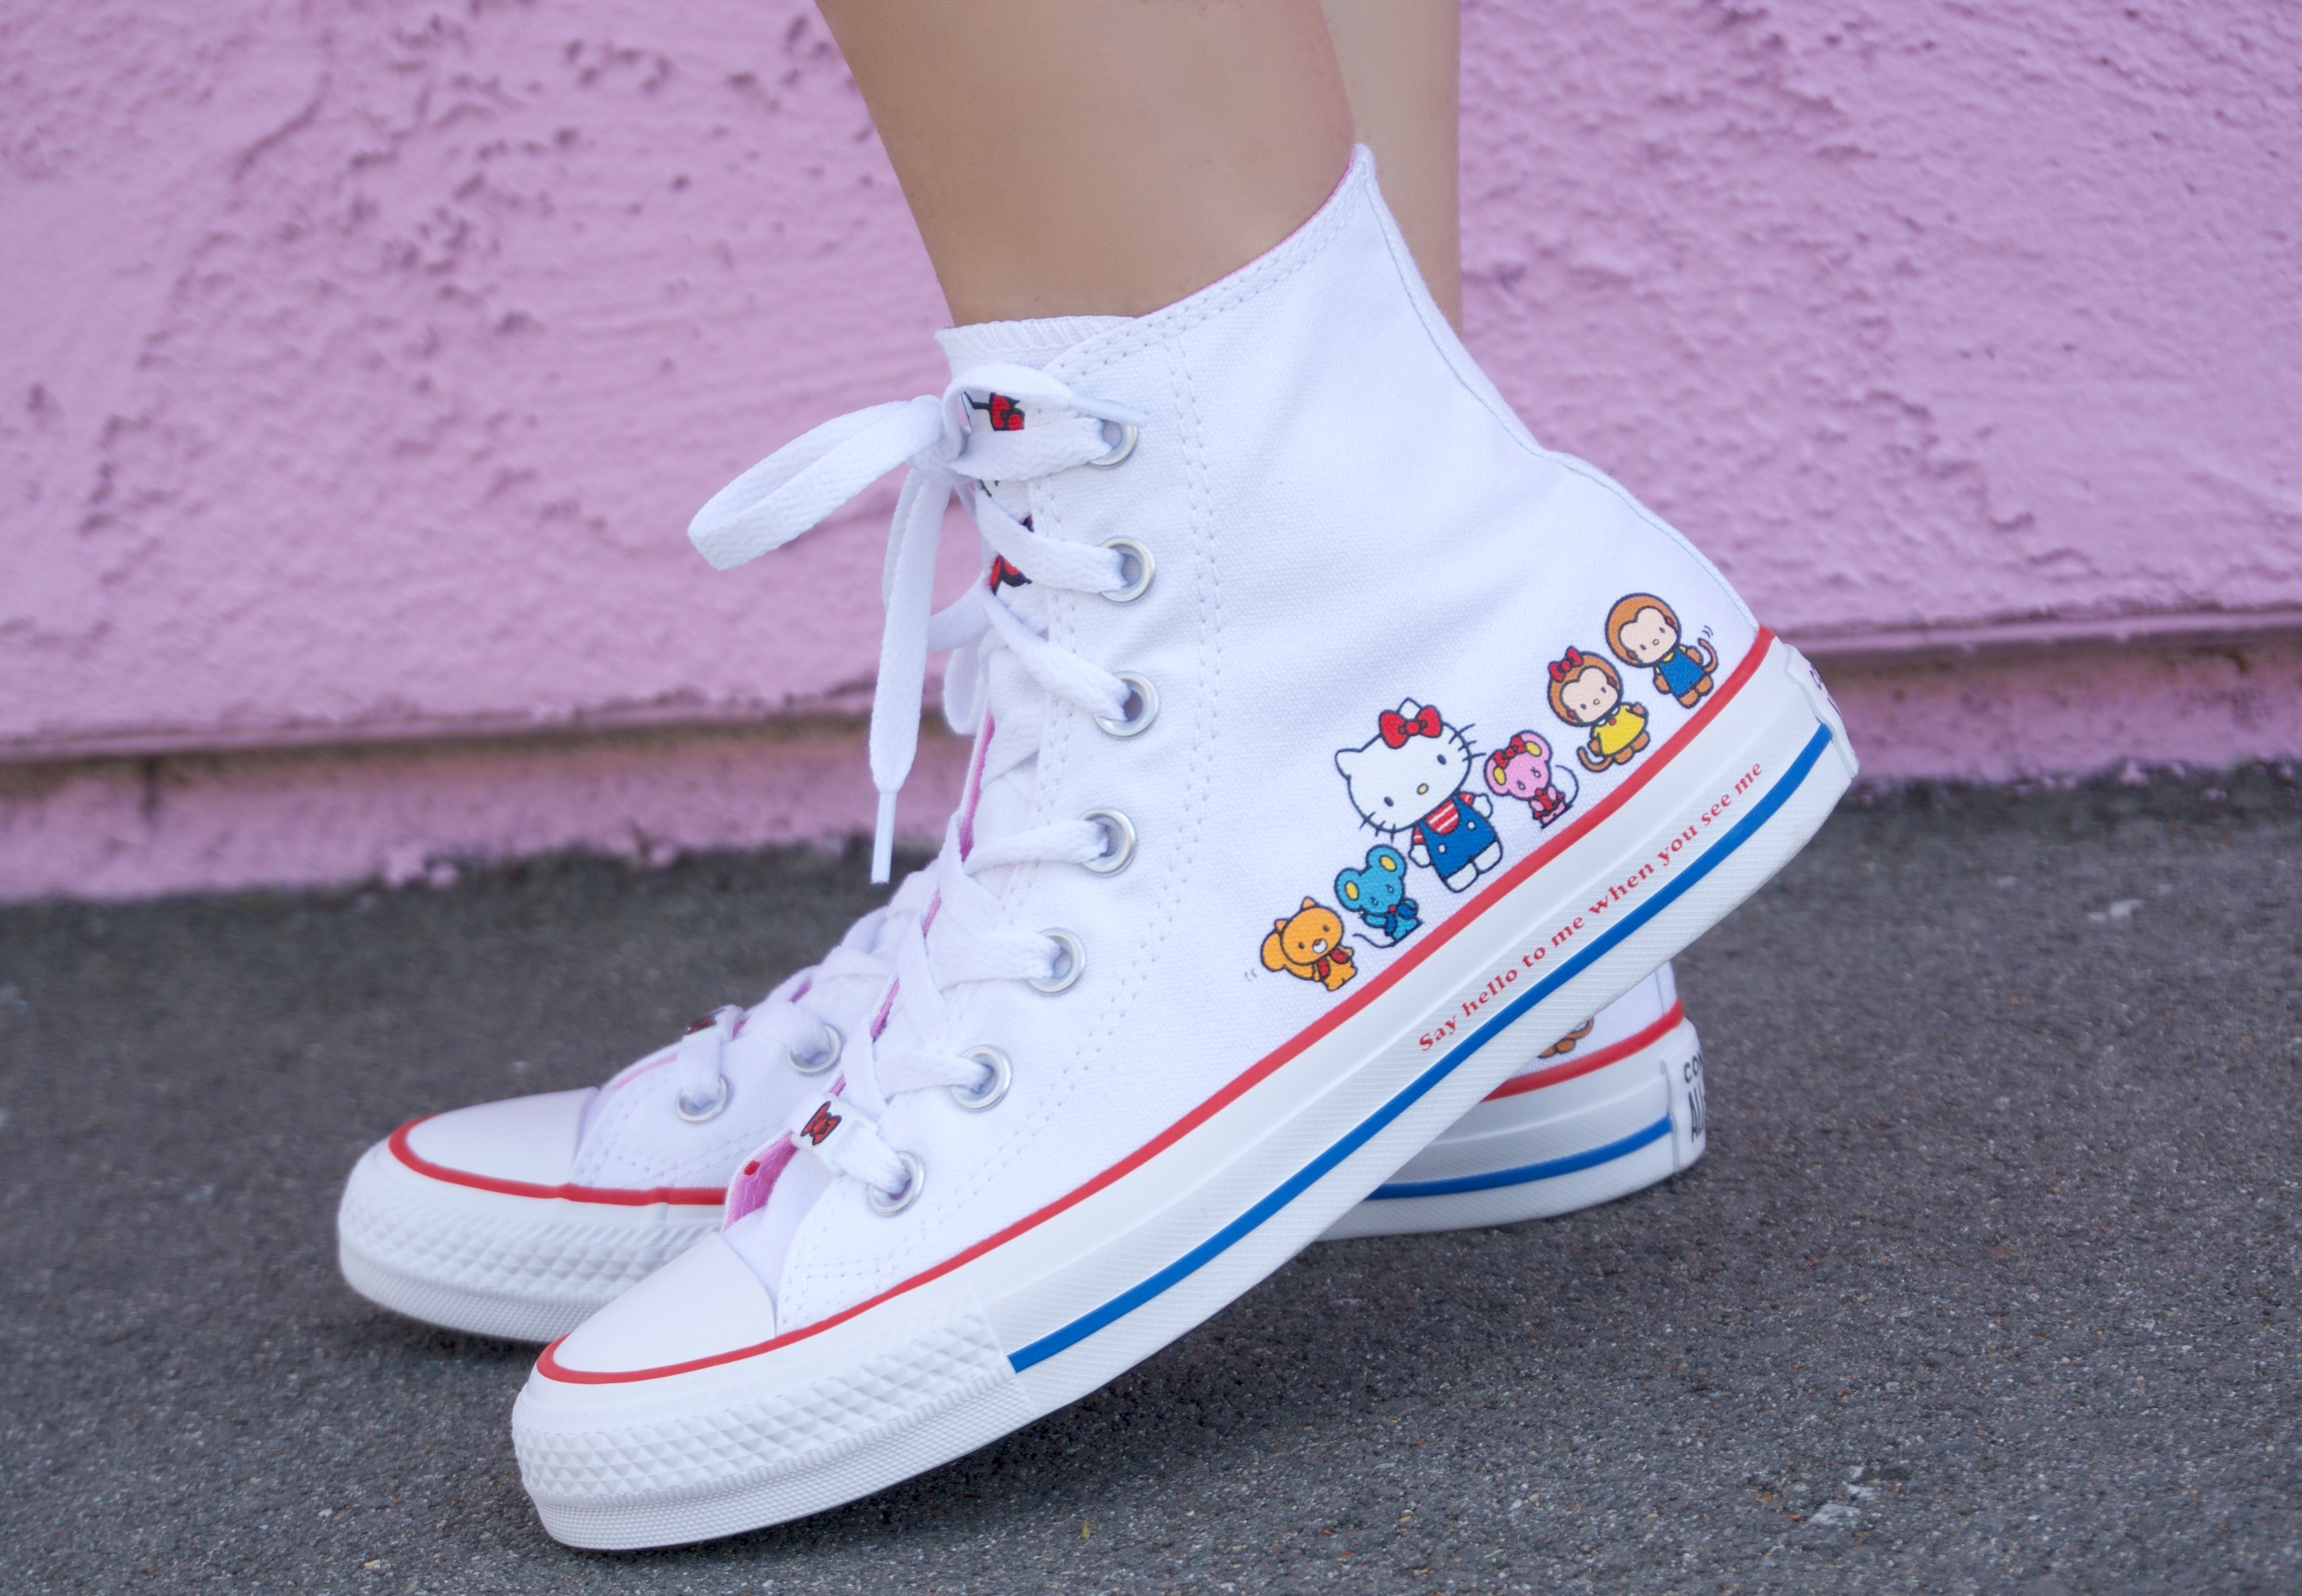 fed6562c20b17c Hello Kitty x Converse  Back to School Chic - The Ageless Millennial